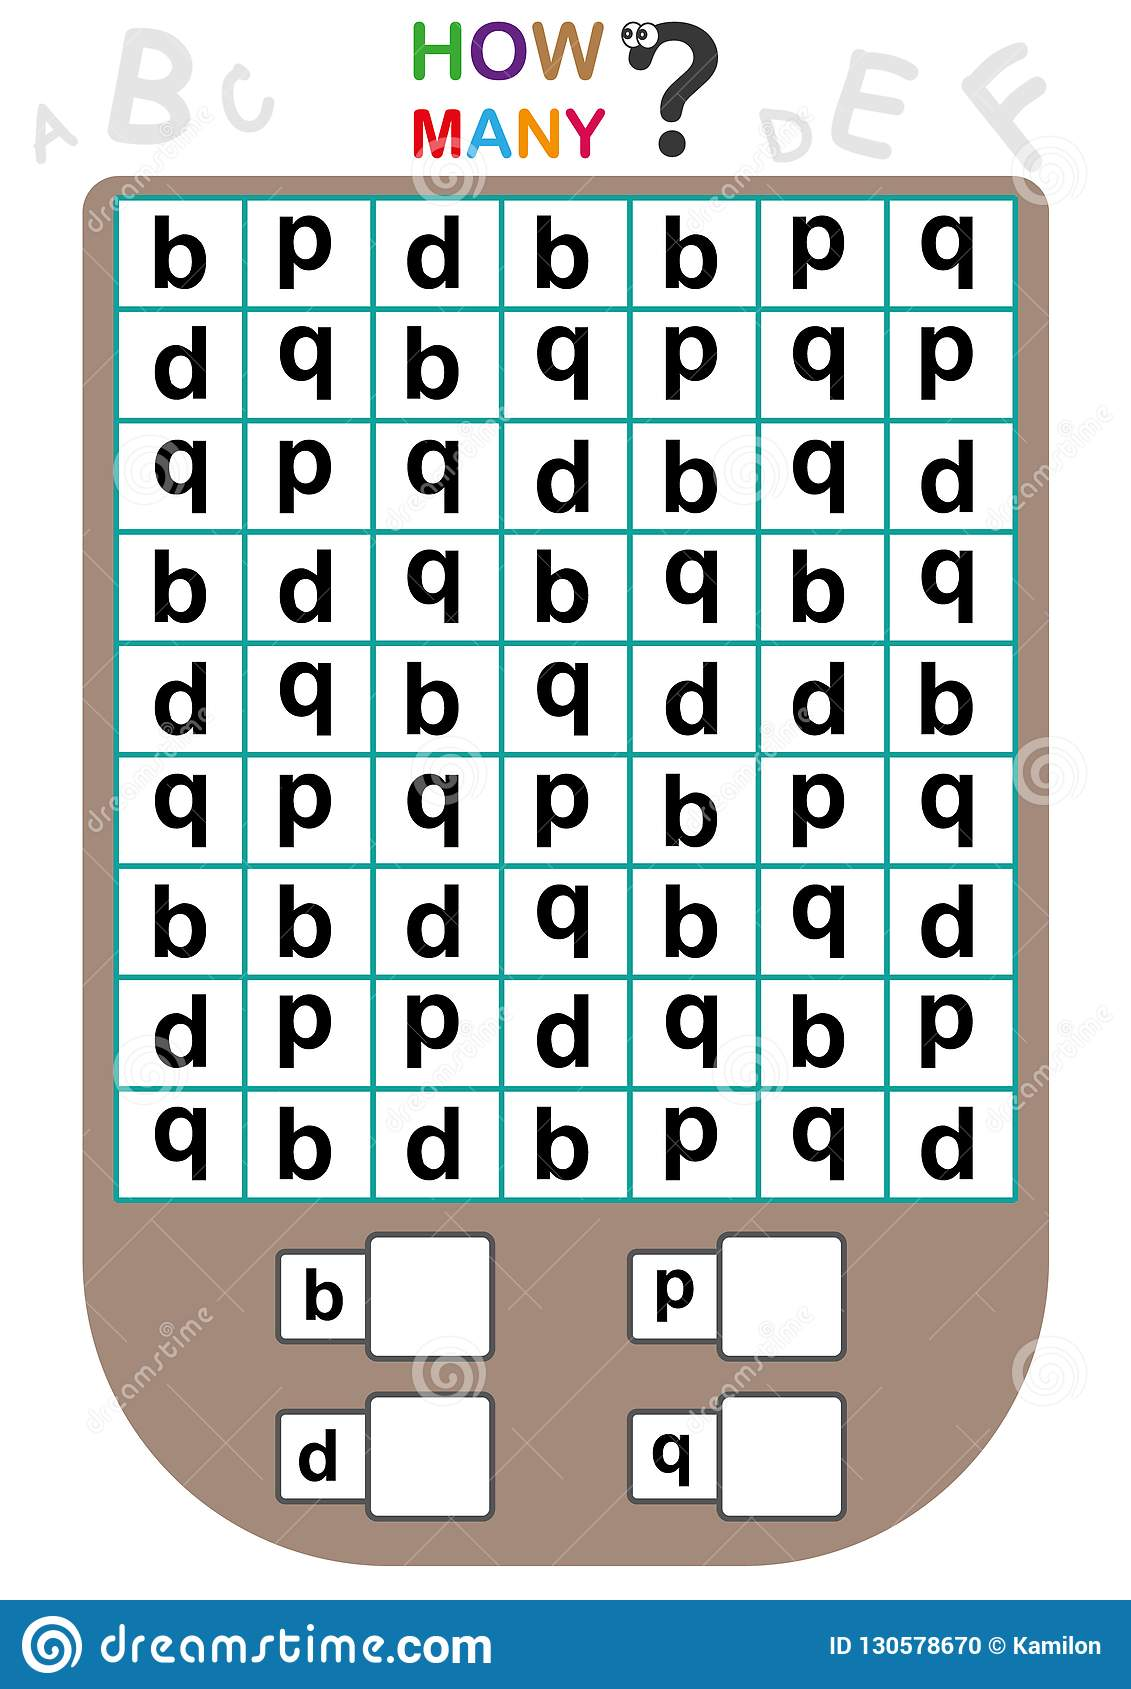 Worksheet For Kids, Count The Number Of Letters, Learn The ...